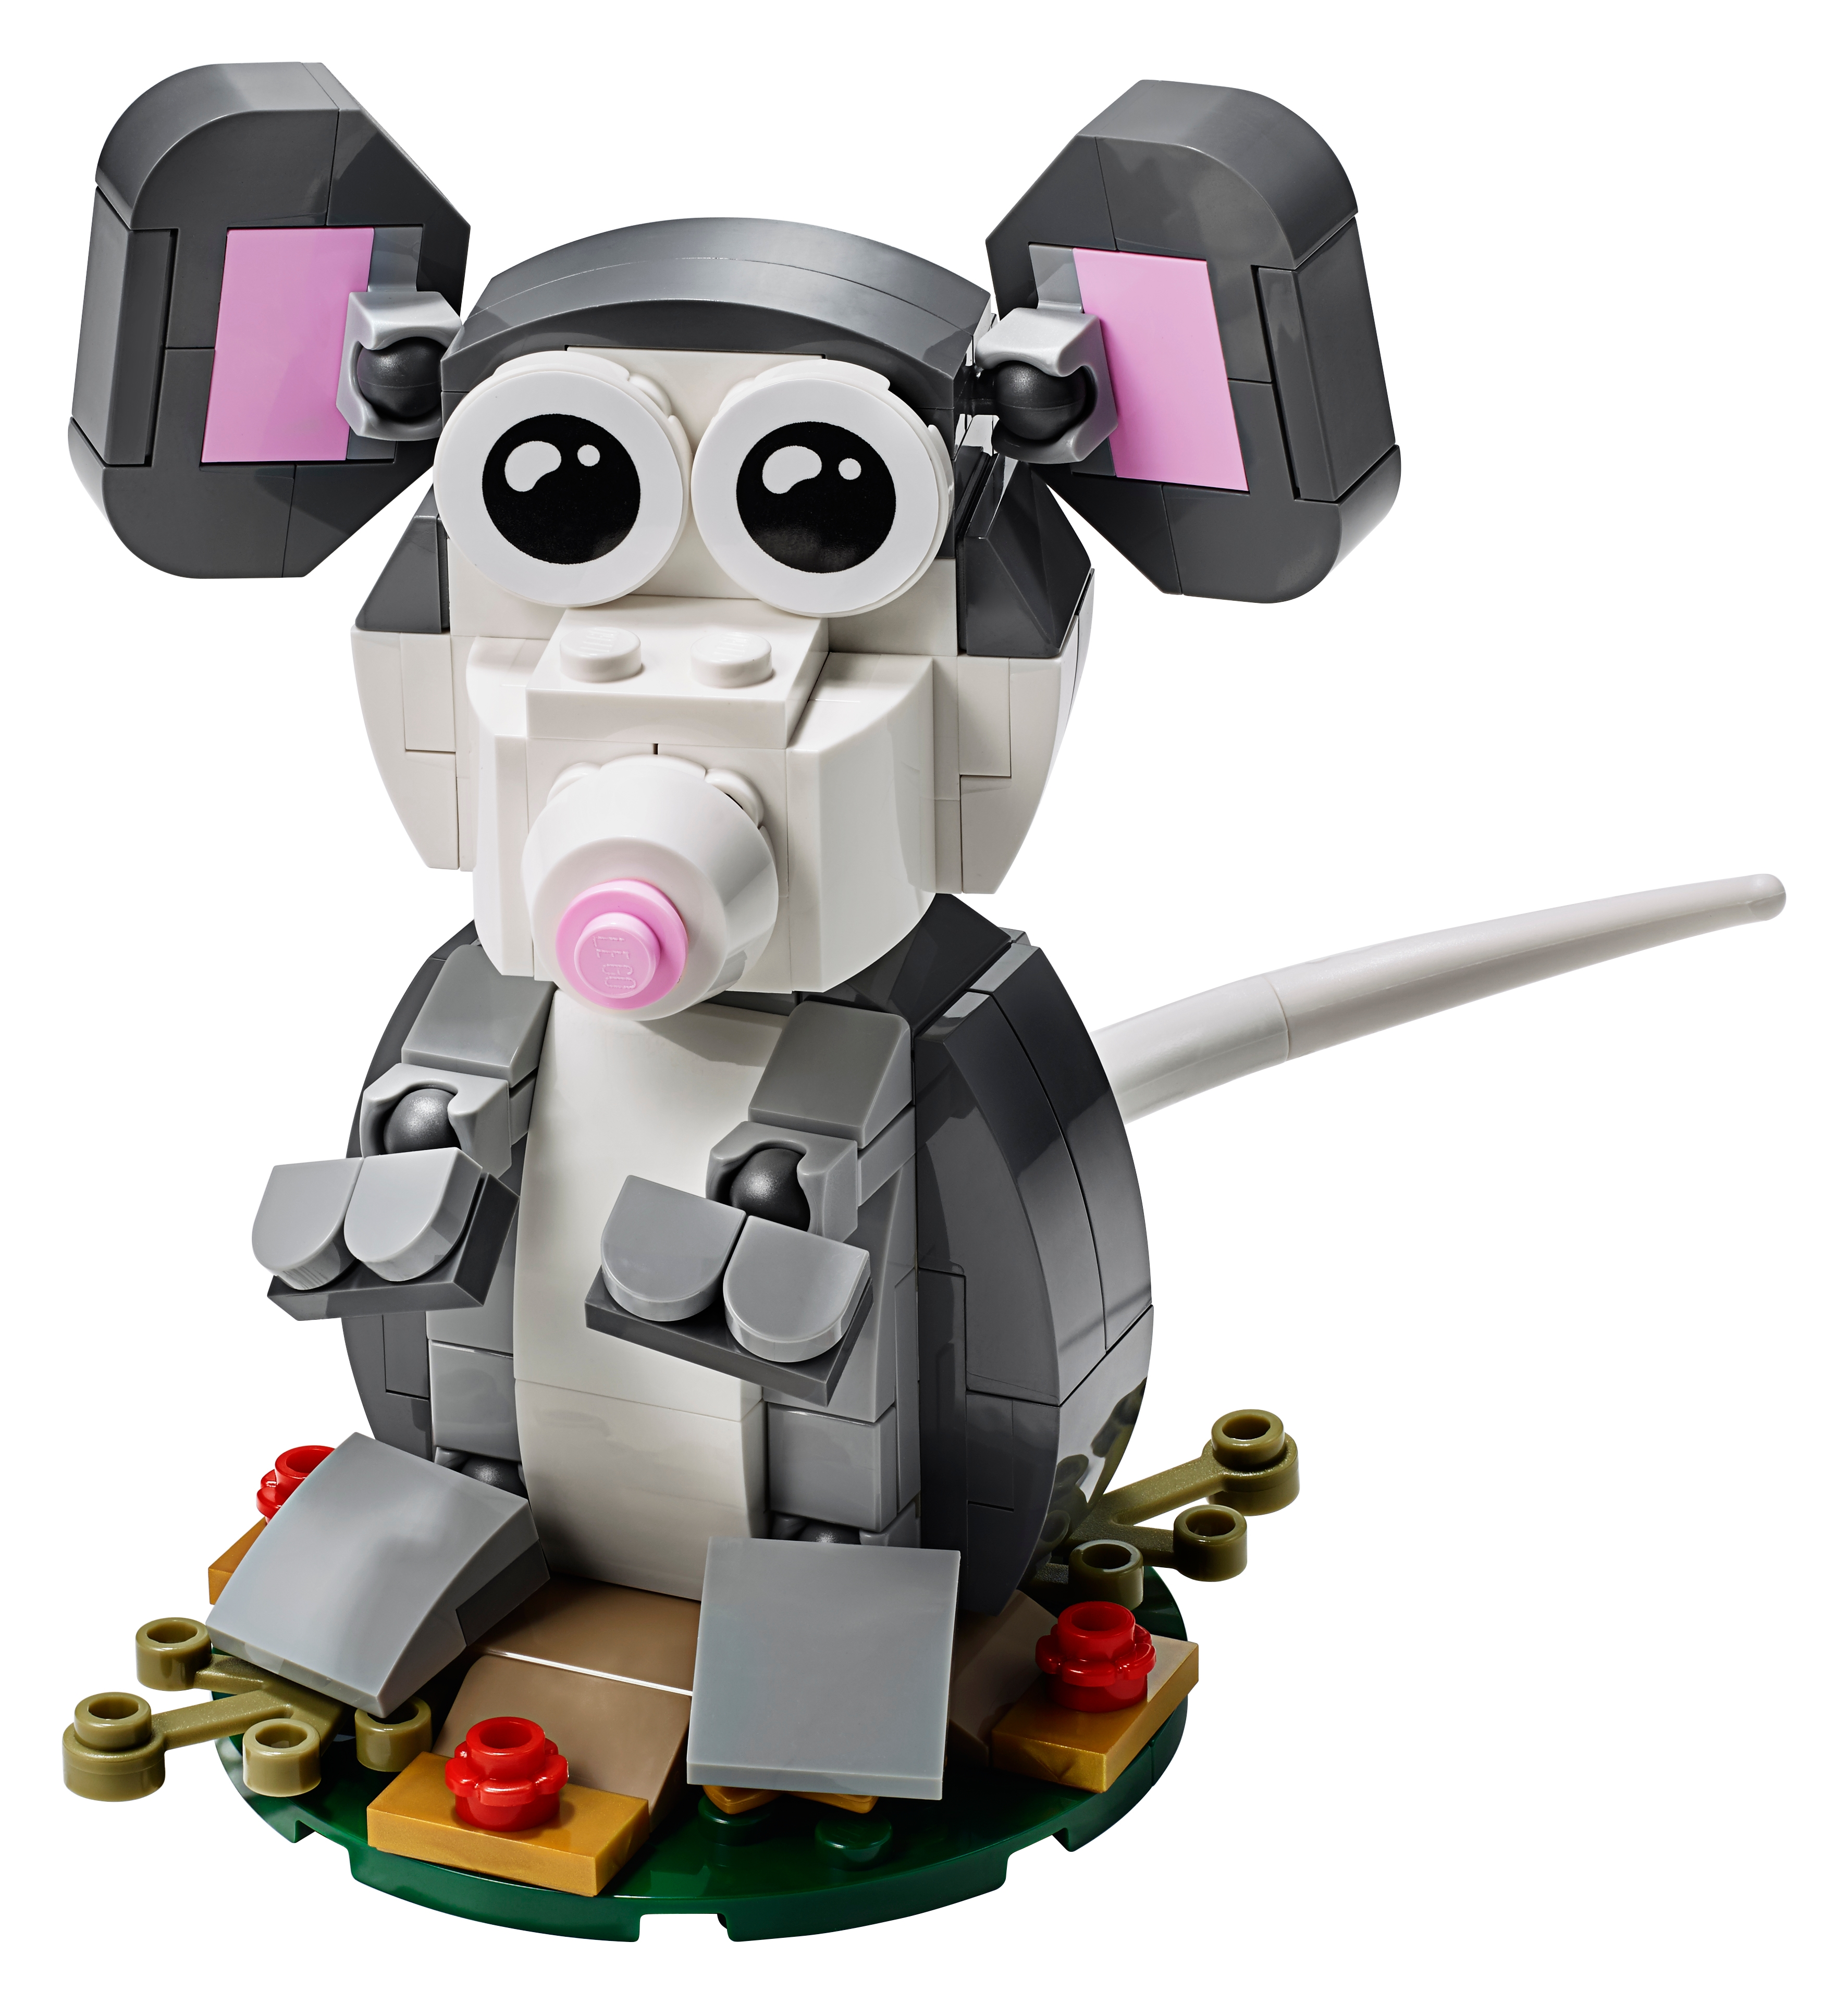 Brand New! LEGO Year of the Rat 40355 Chinese Lunar New Year Exclusive